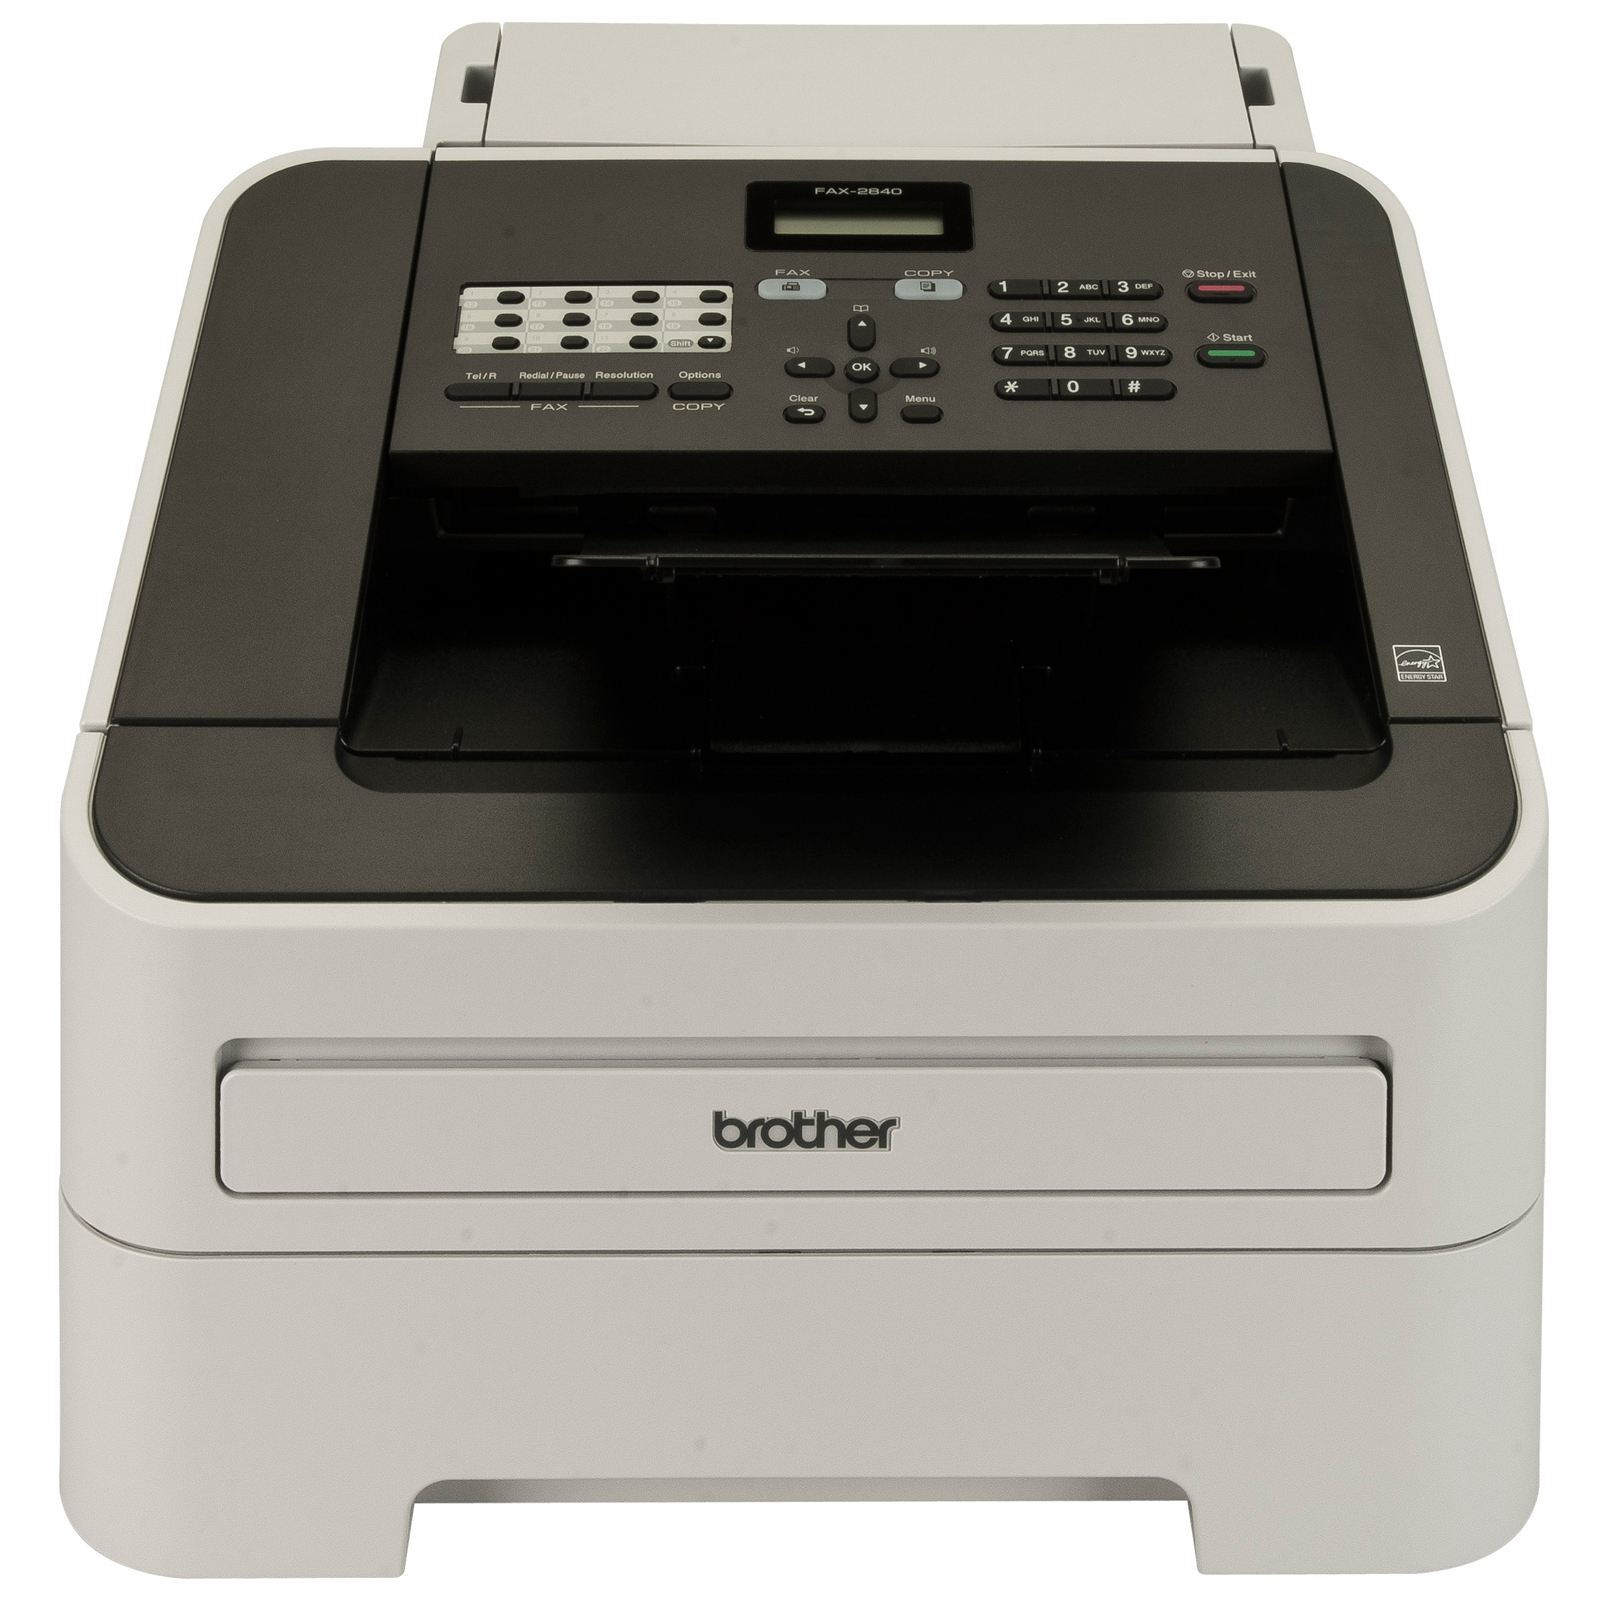 Brother fax-2840 LASERFAX 33600 BPS - Fax - Laser/LED-Druck